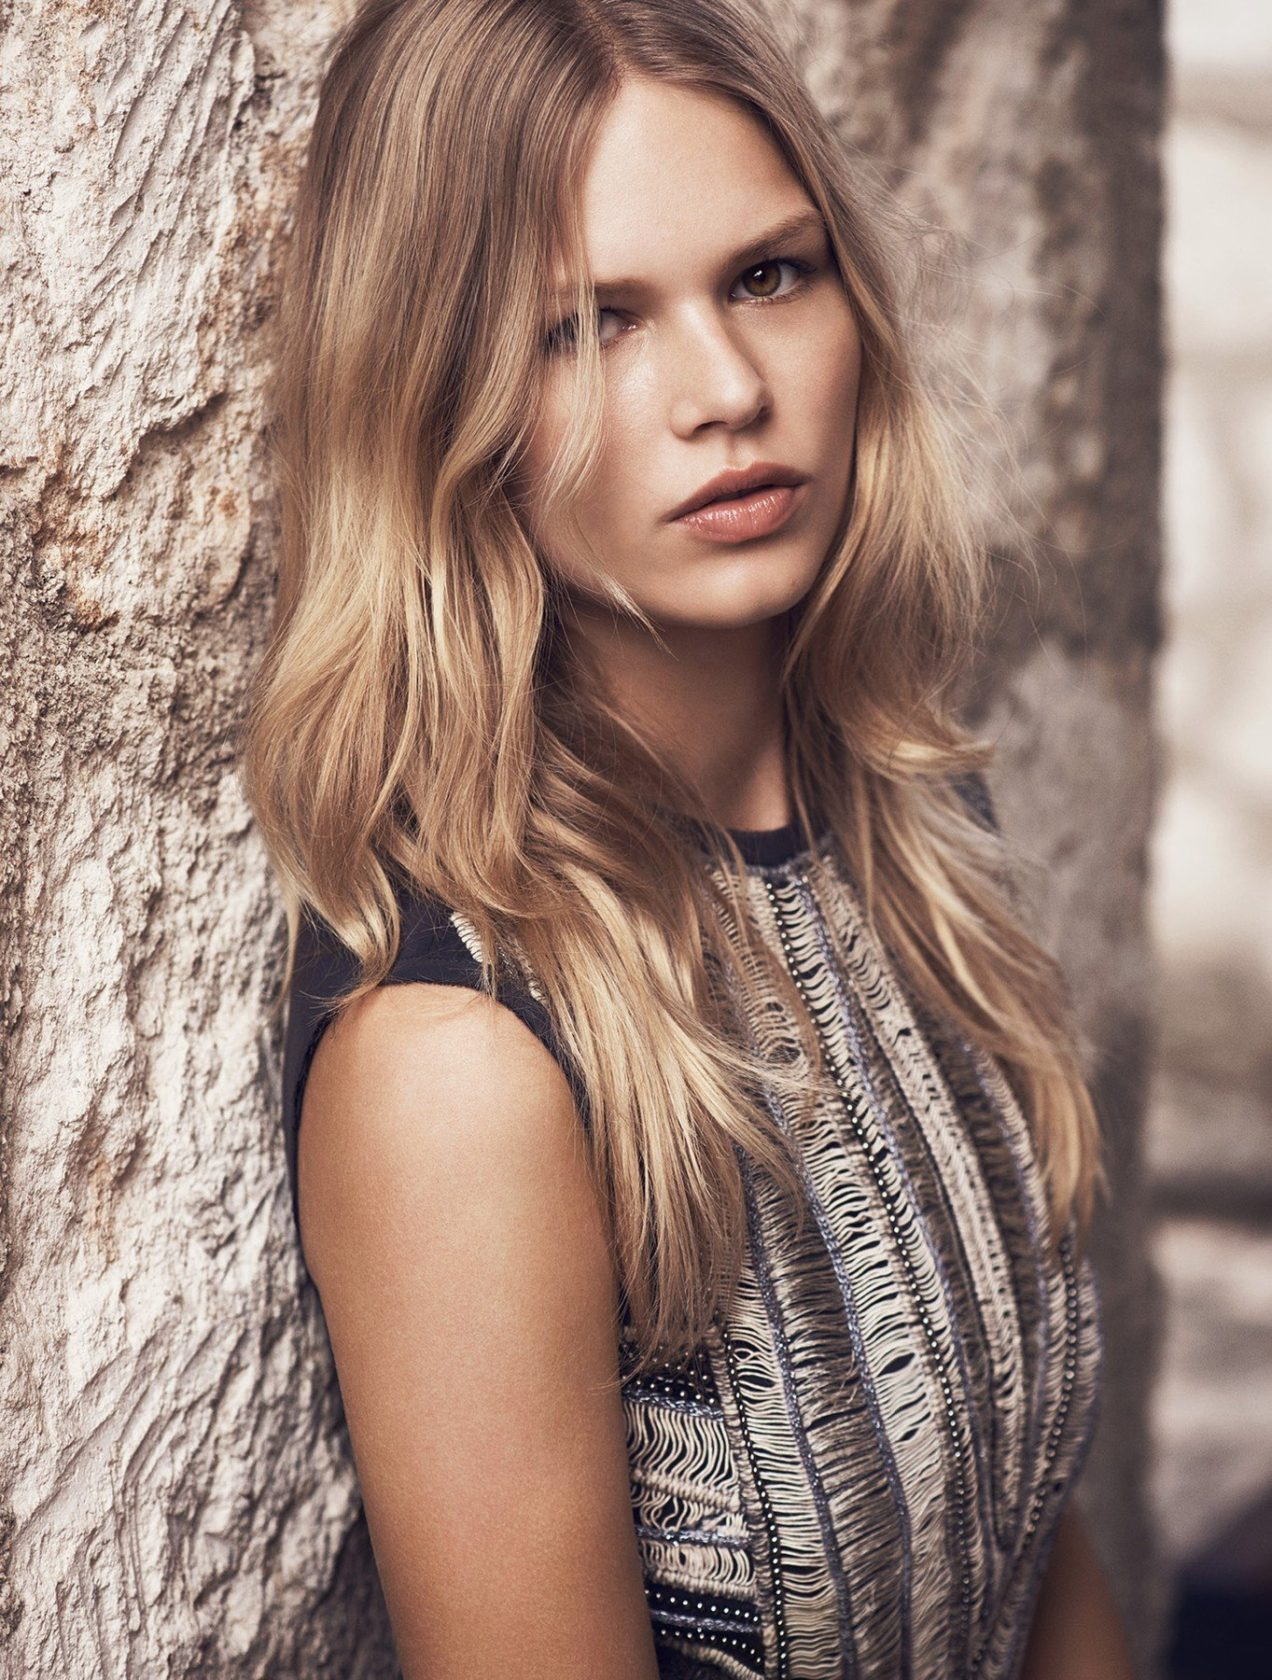 Anna Ewers in the photoshoot for the new summer 2015 collection of Mango, Image: 239133758, License: Rights-managed, Restrictions: , Model Release: no, Credit line: Profimedia, Thunder Press